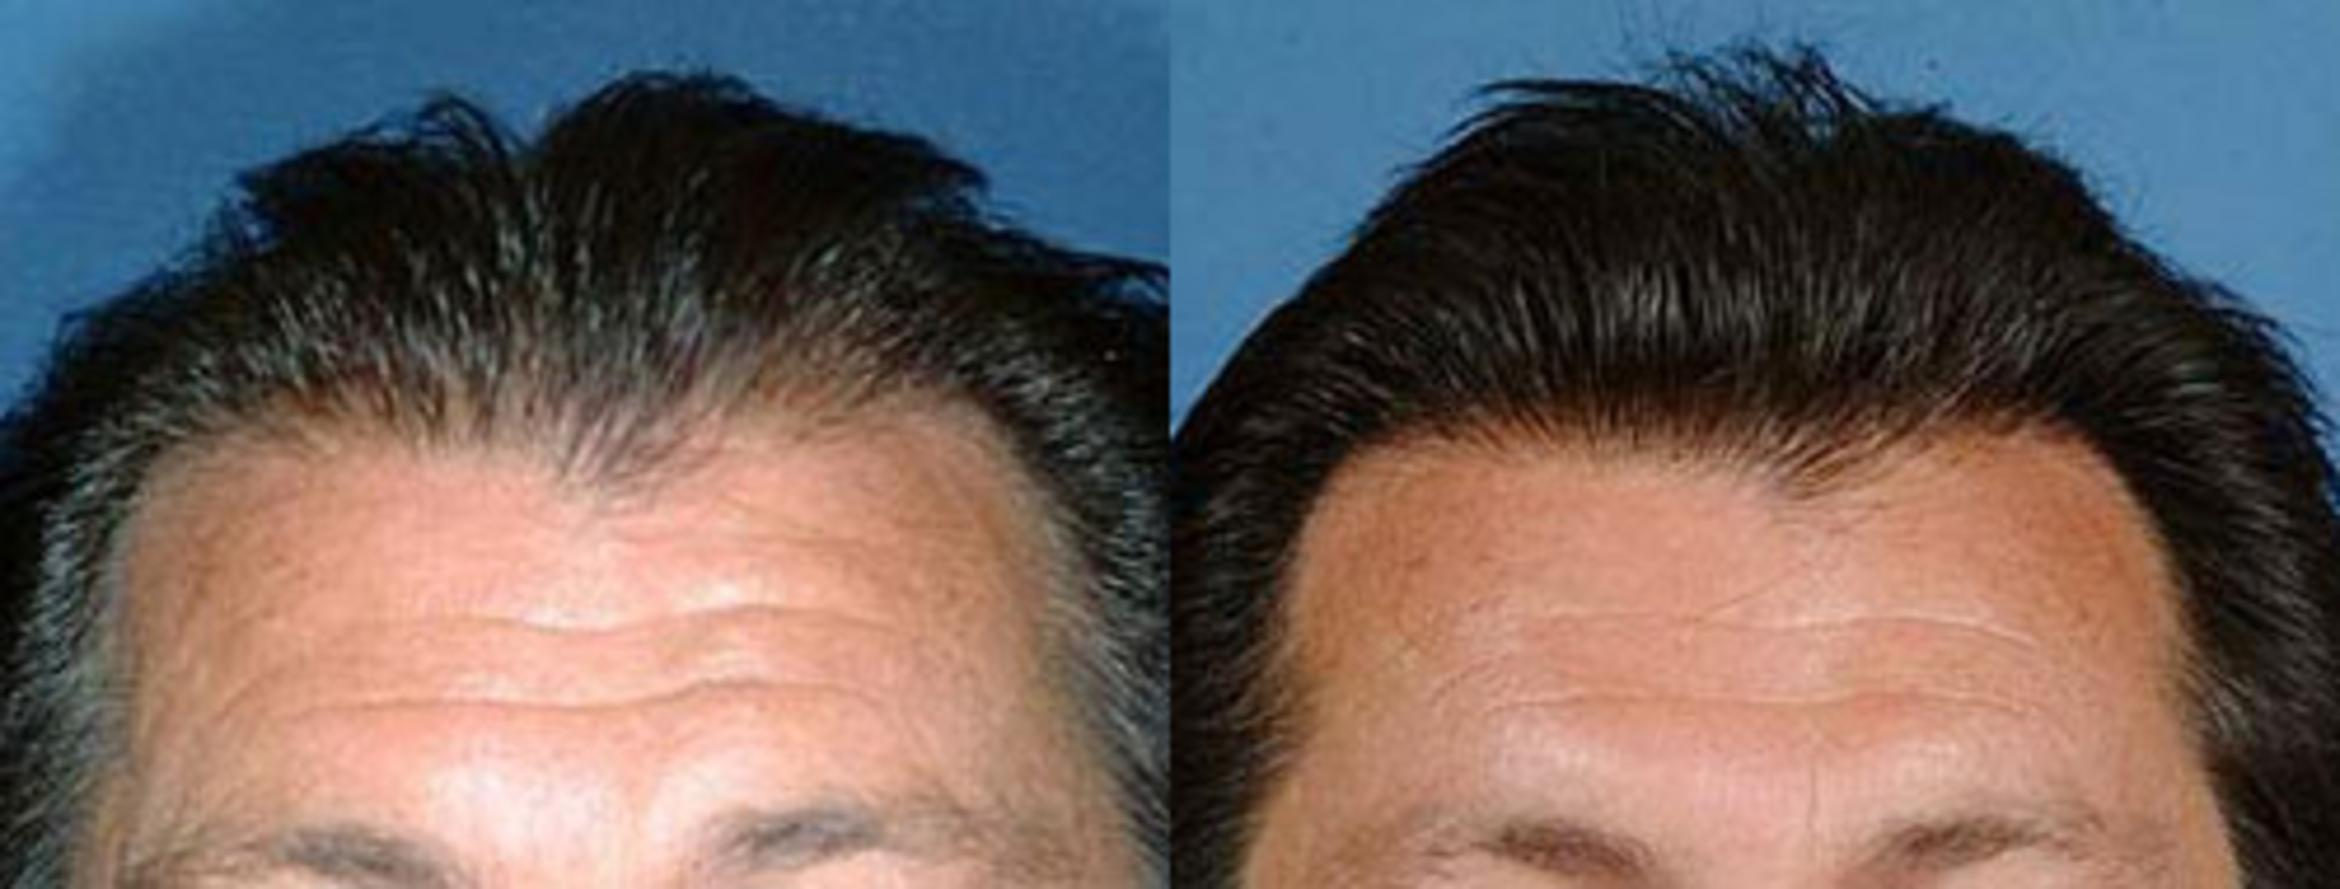 Hair Transplant Case 105 Before & After View #1 | Louisville, KY | CaloAesthetics® Plastic Surgery Center